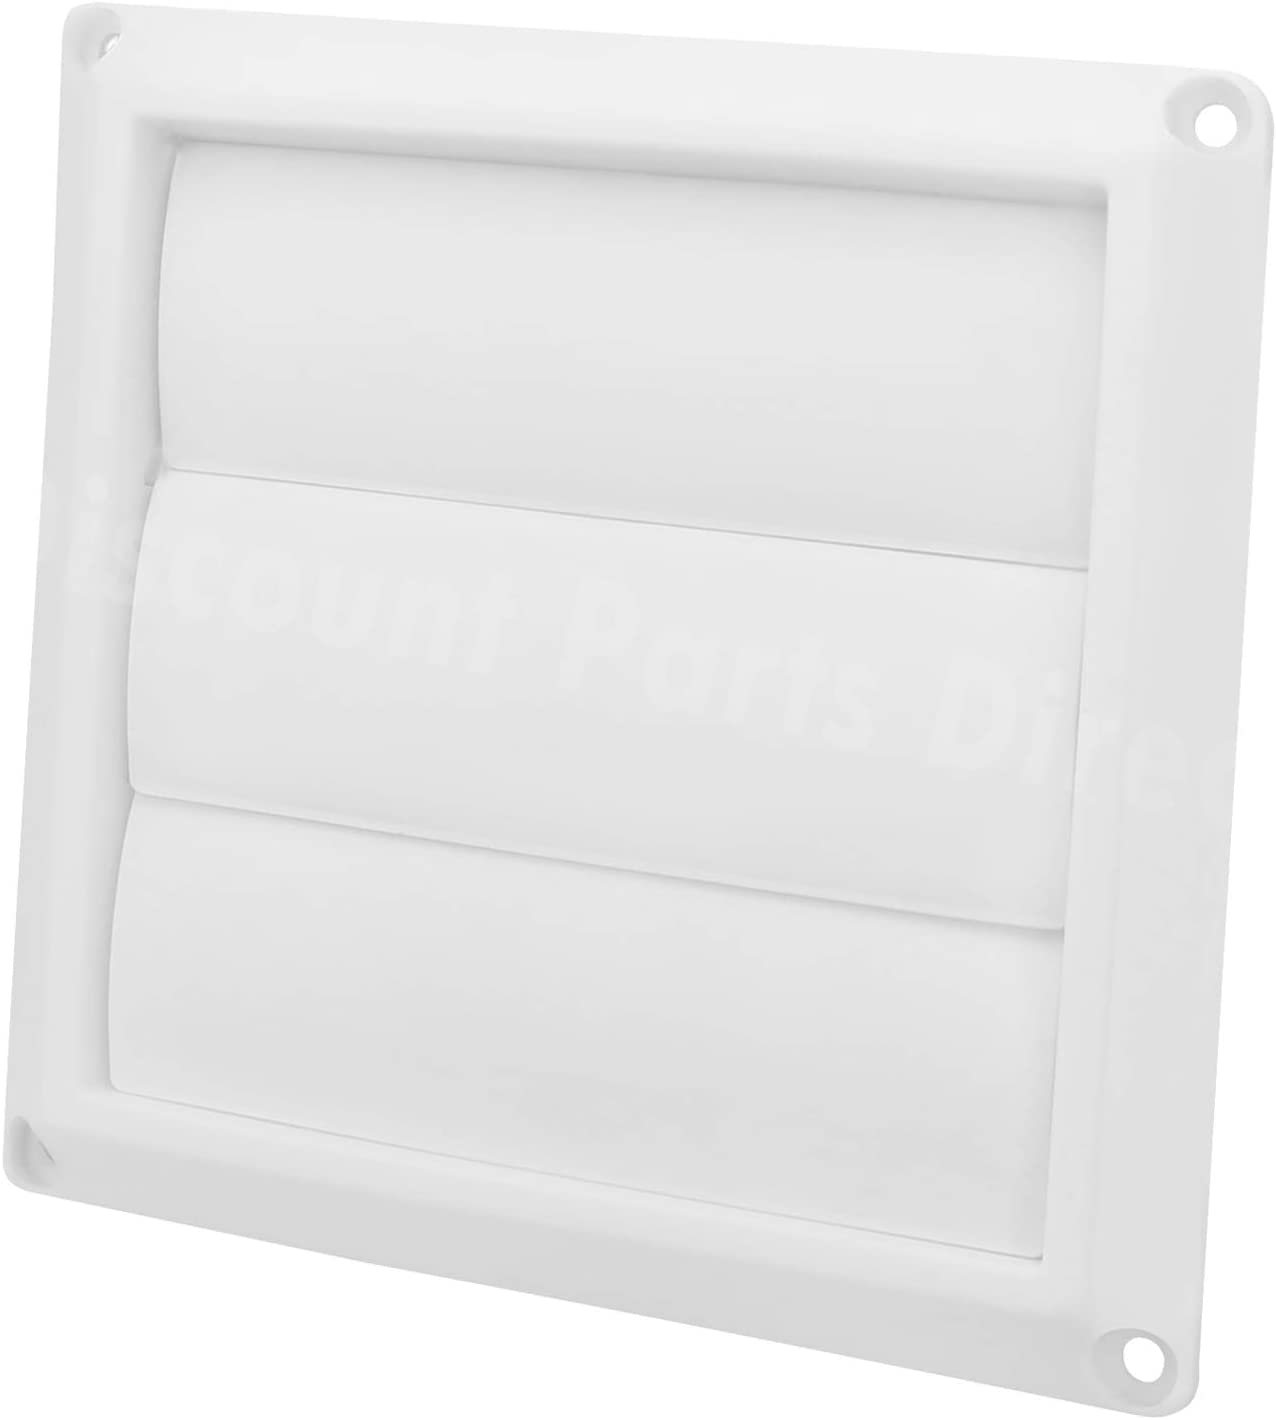 Outdoor Dryer Air Vent Cover Louvered excellence Exteri 4'' shop White Cap